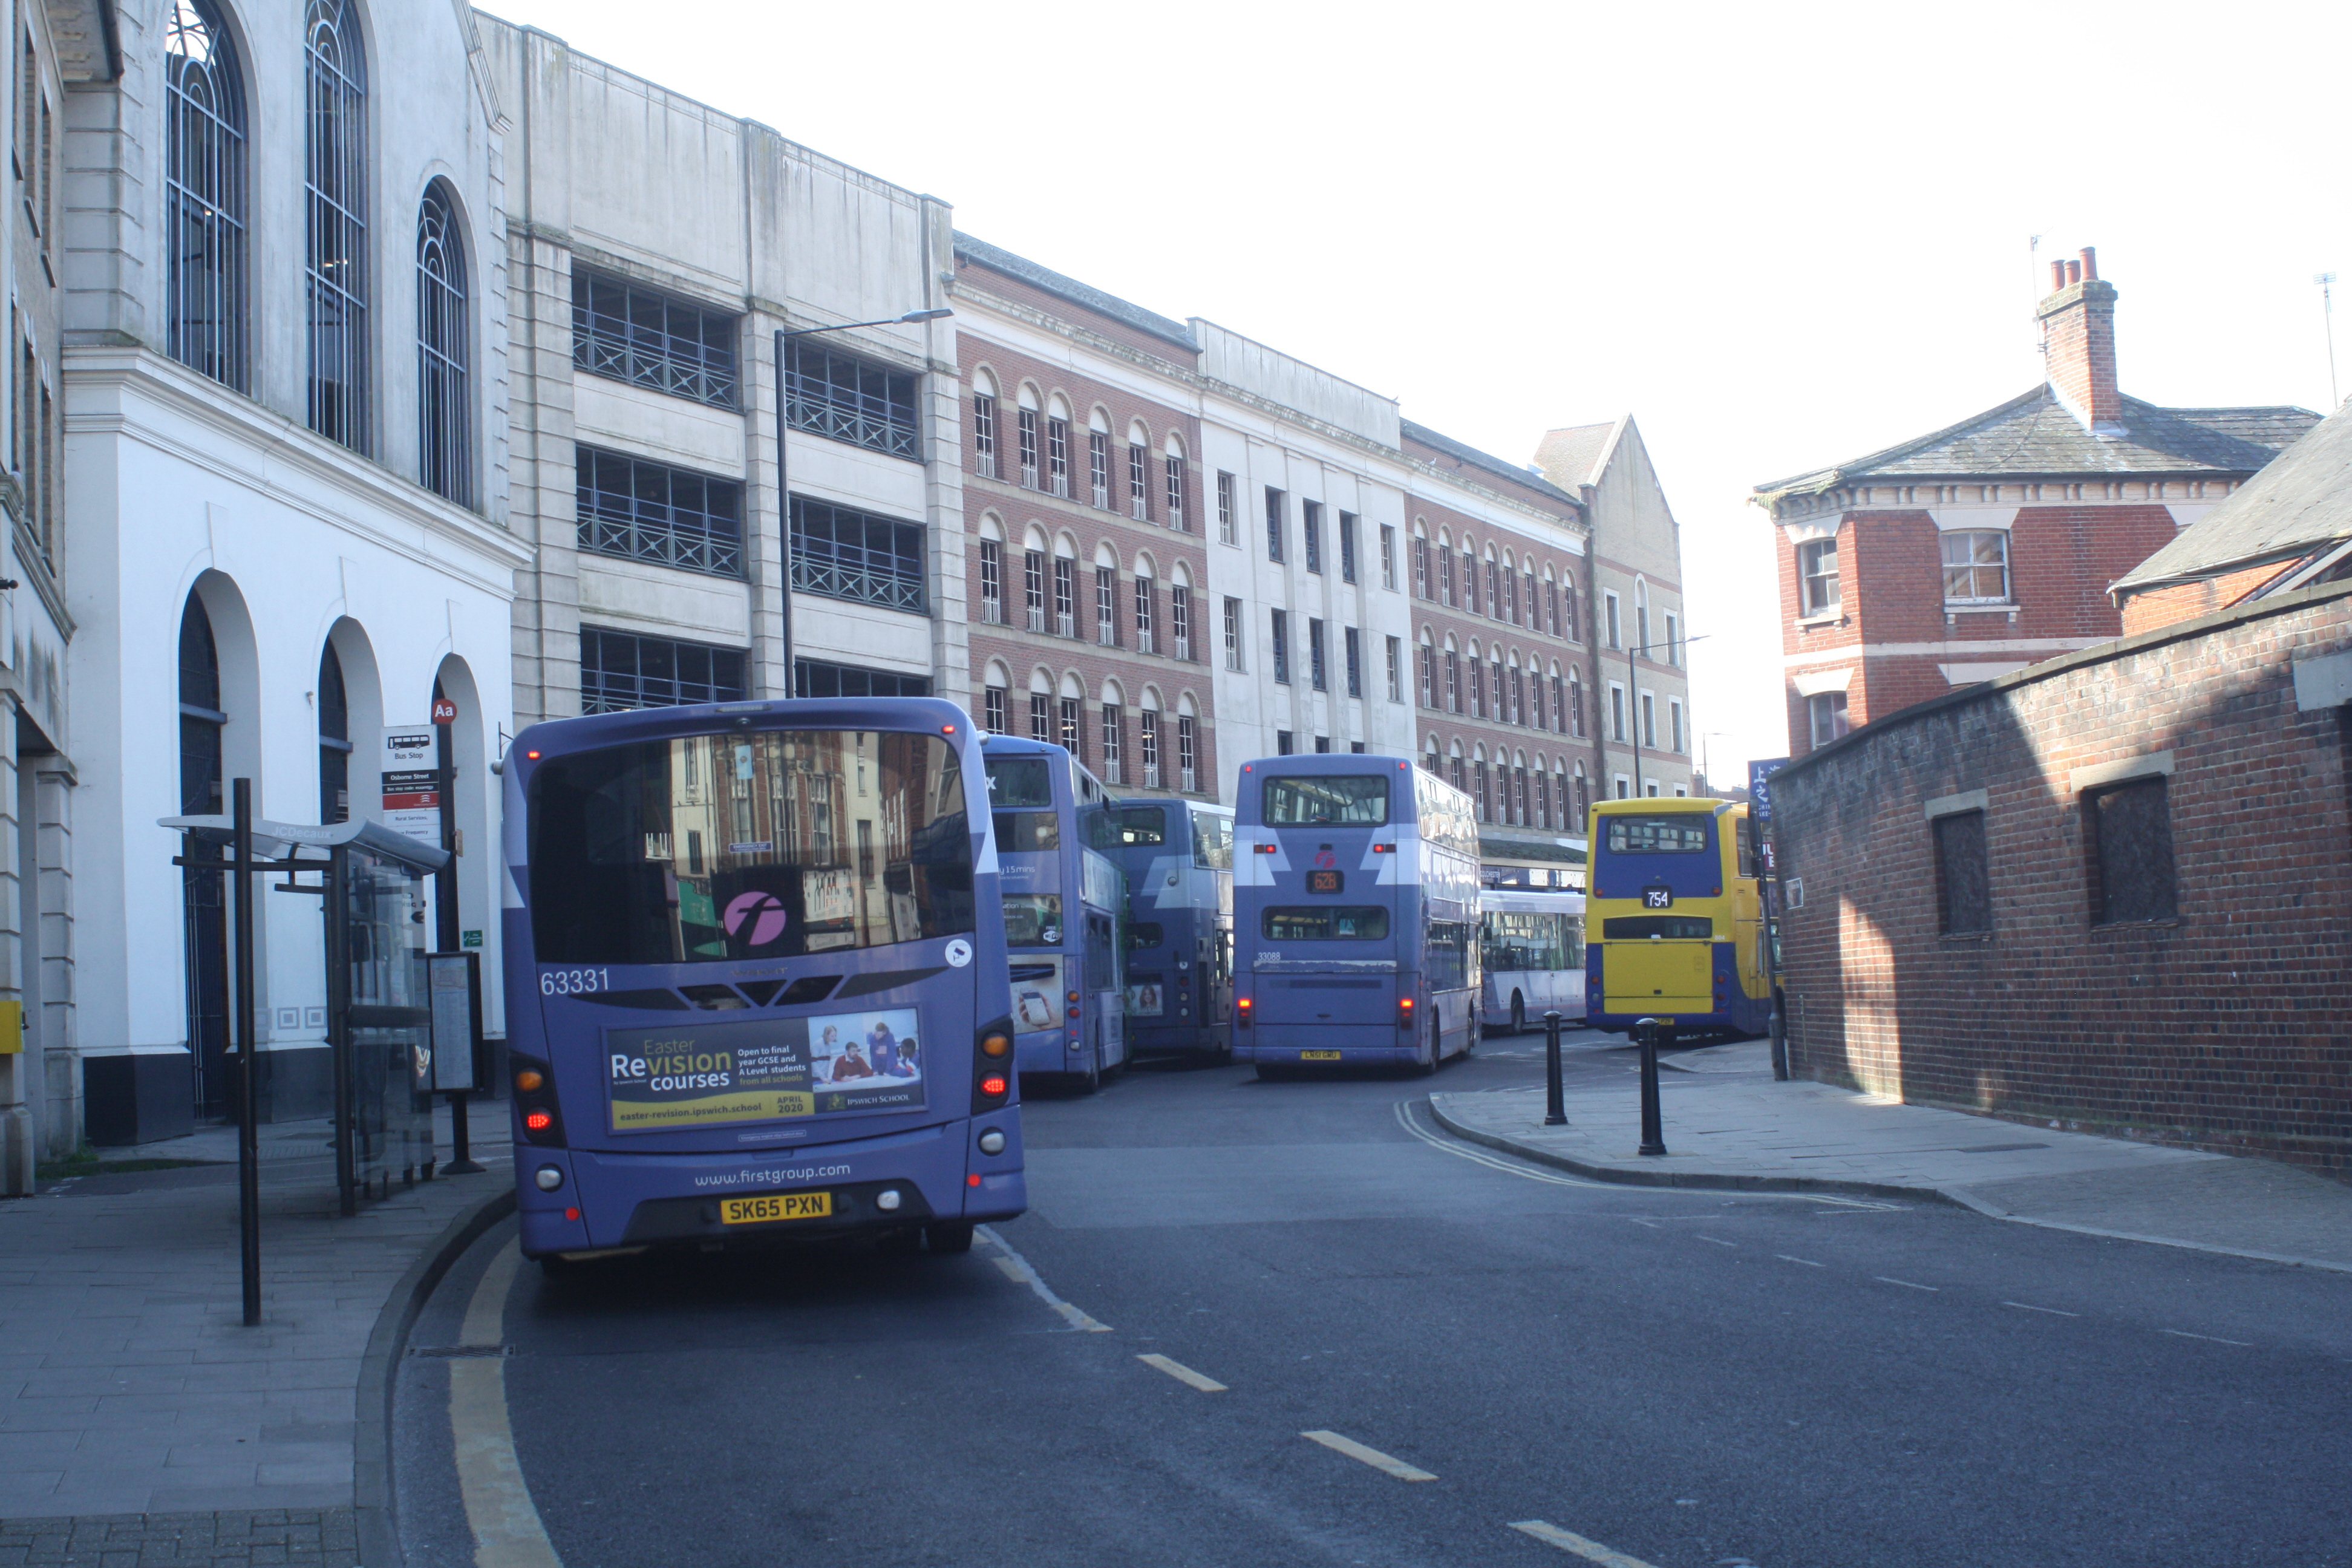 COLCHESTER BUS STATION 27-3-20